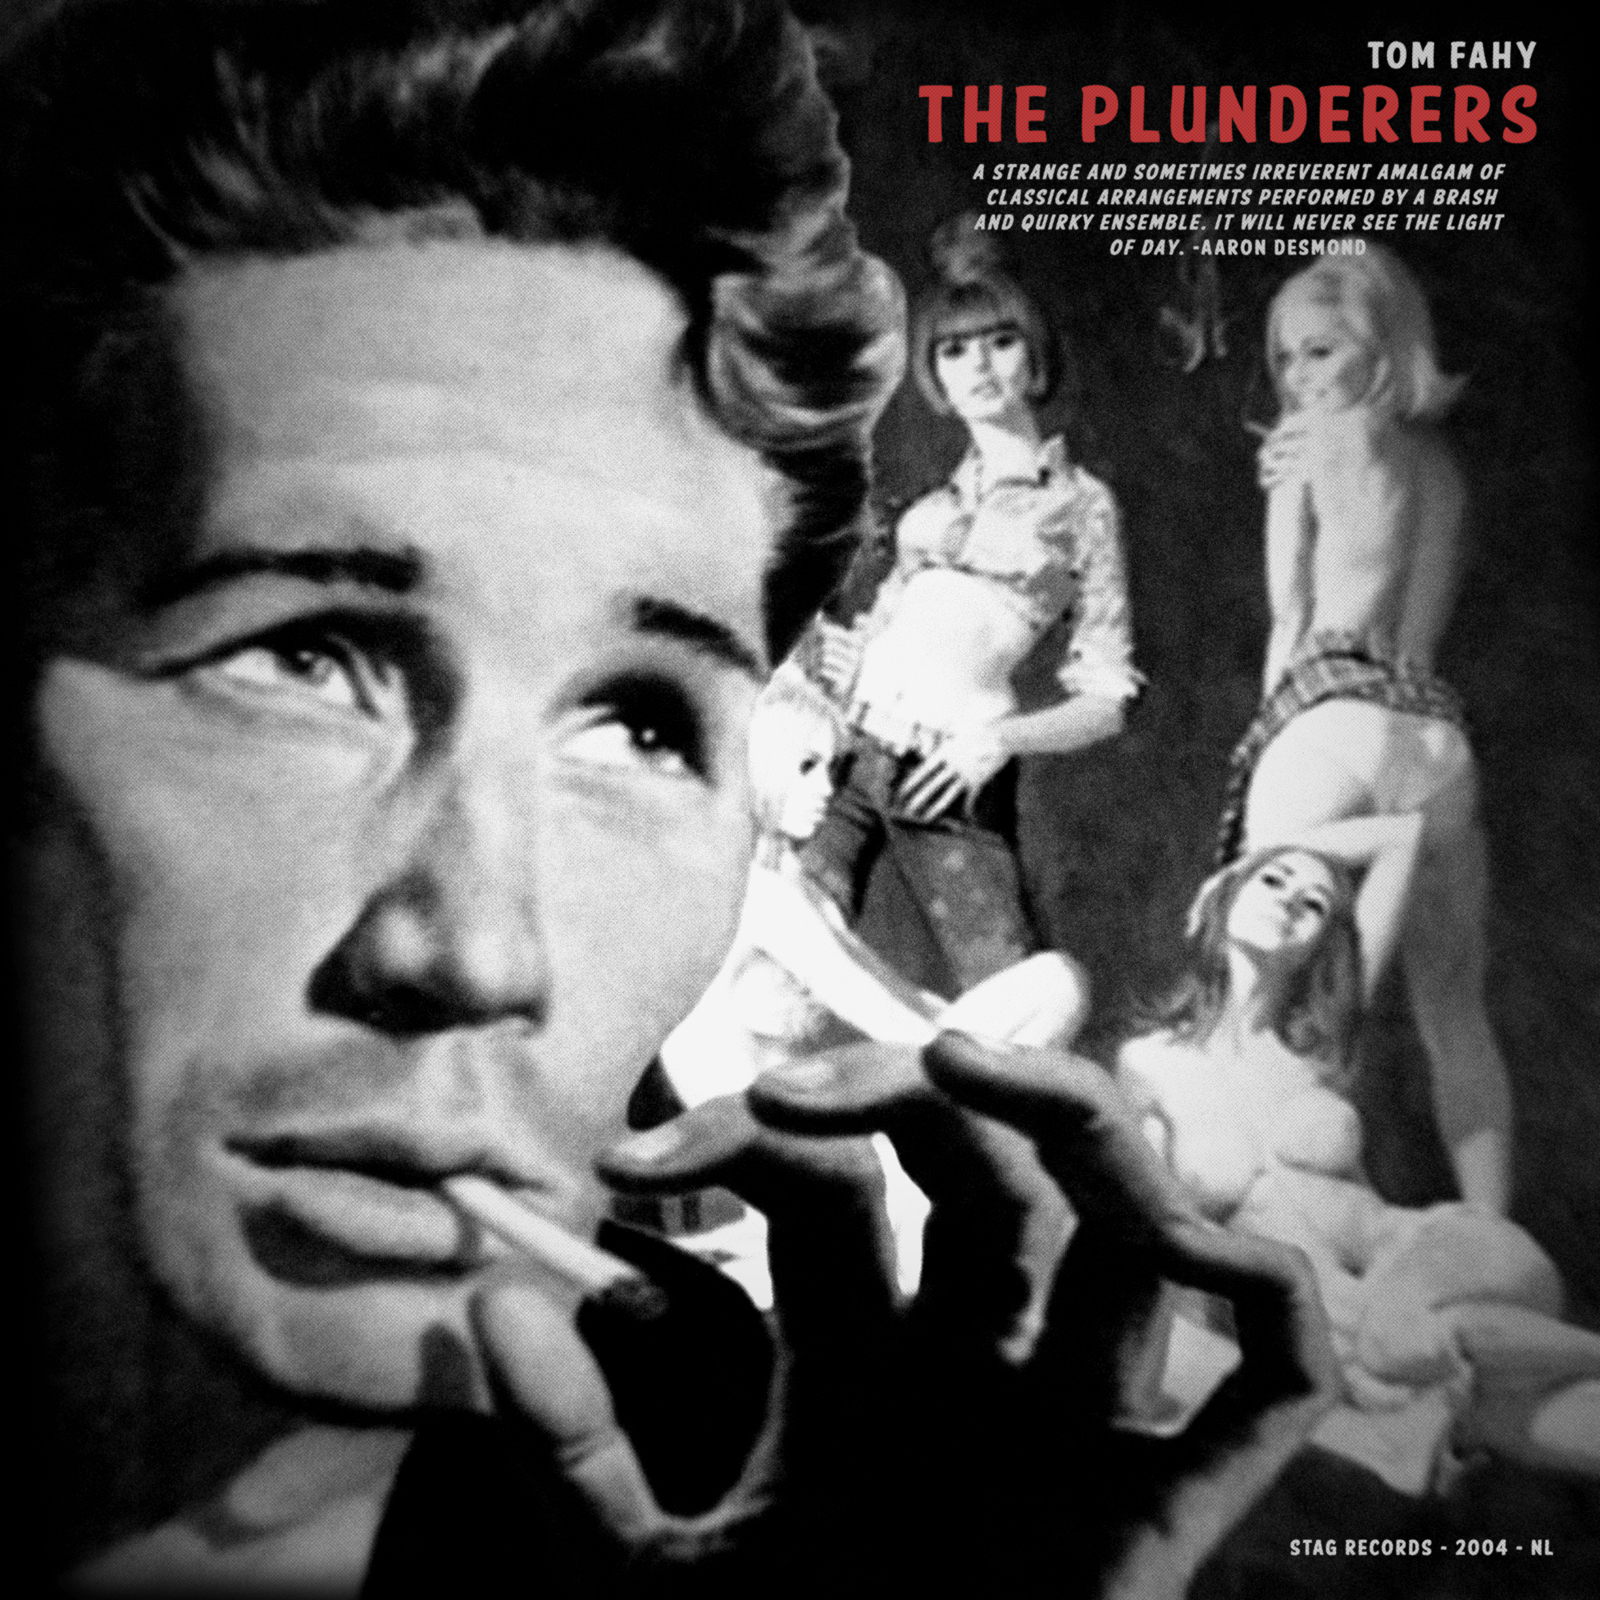 The Plunderers by Tom Fahy